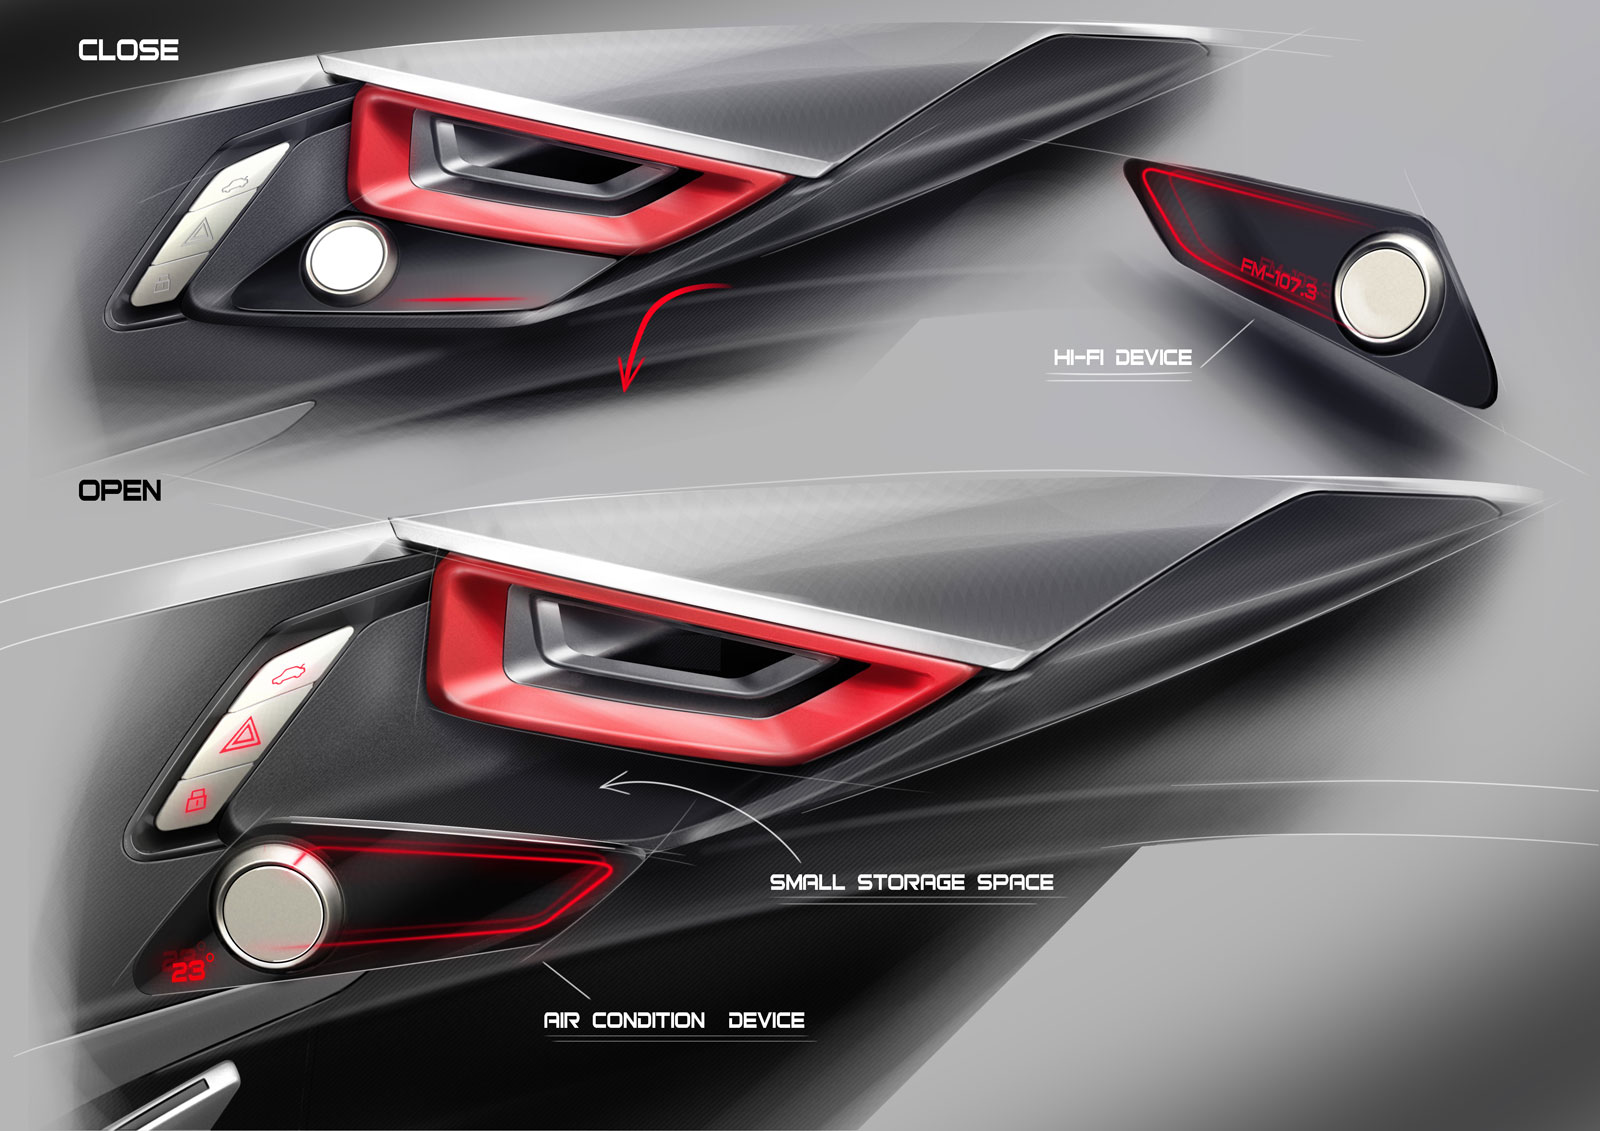 Spd Concept Car Interior Design Sketches Car Body Design